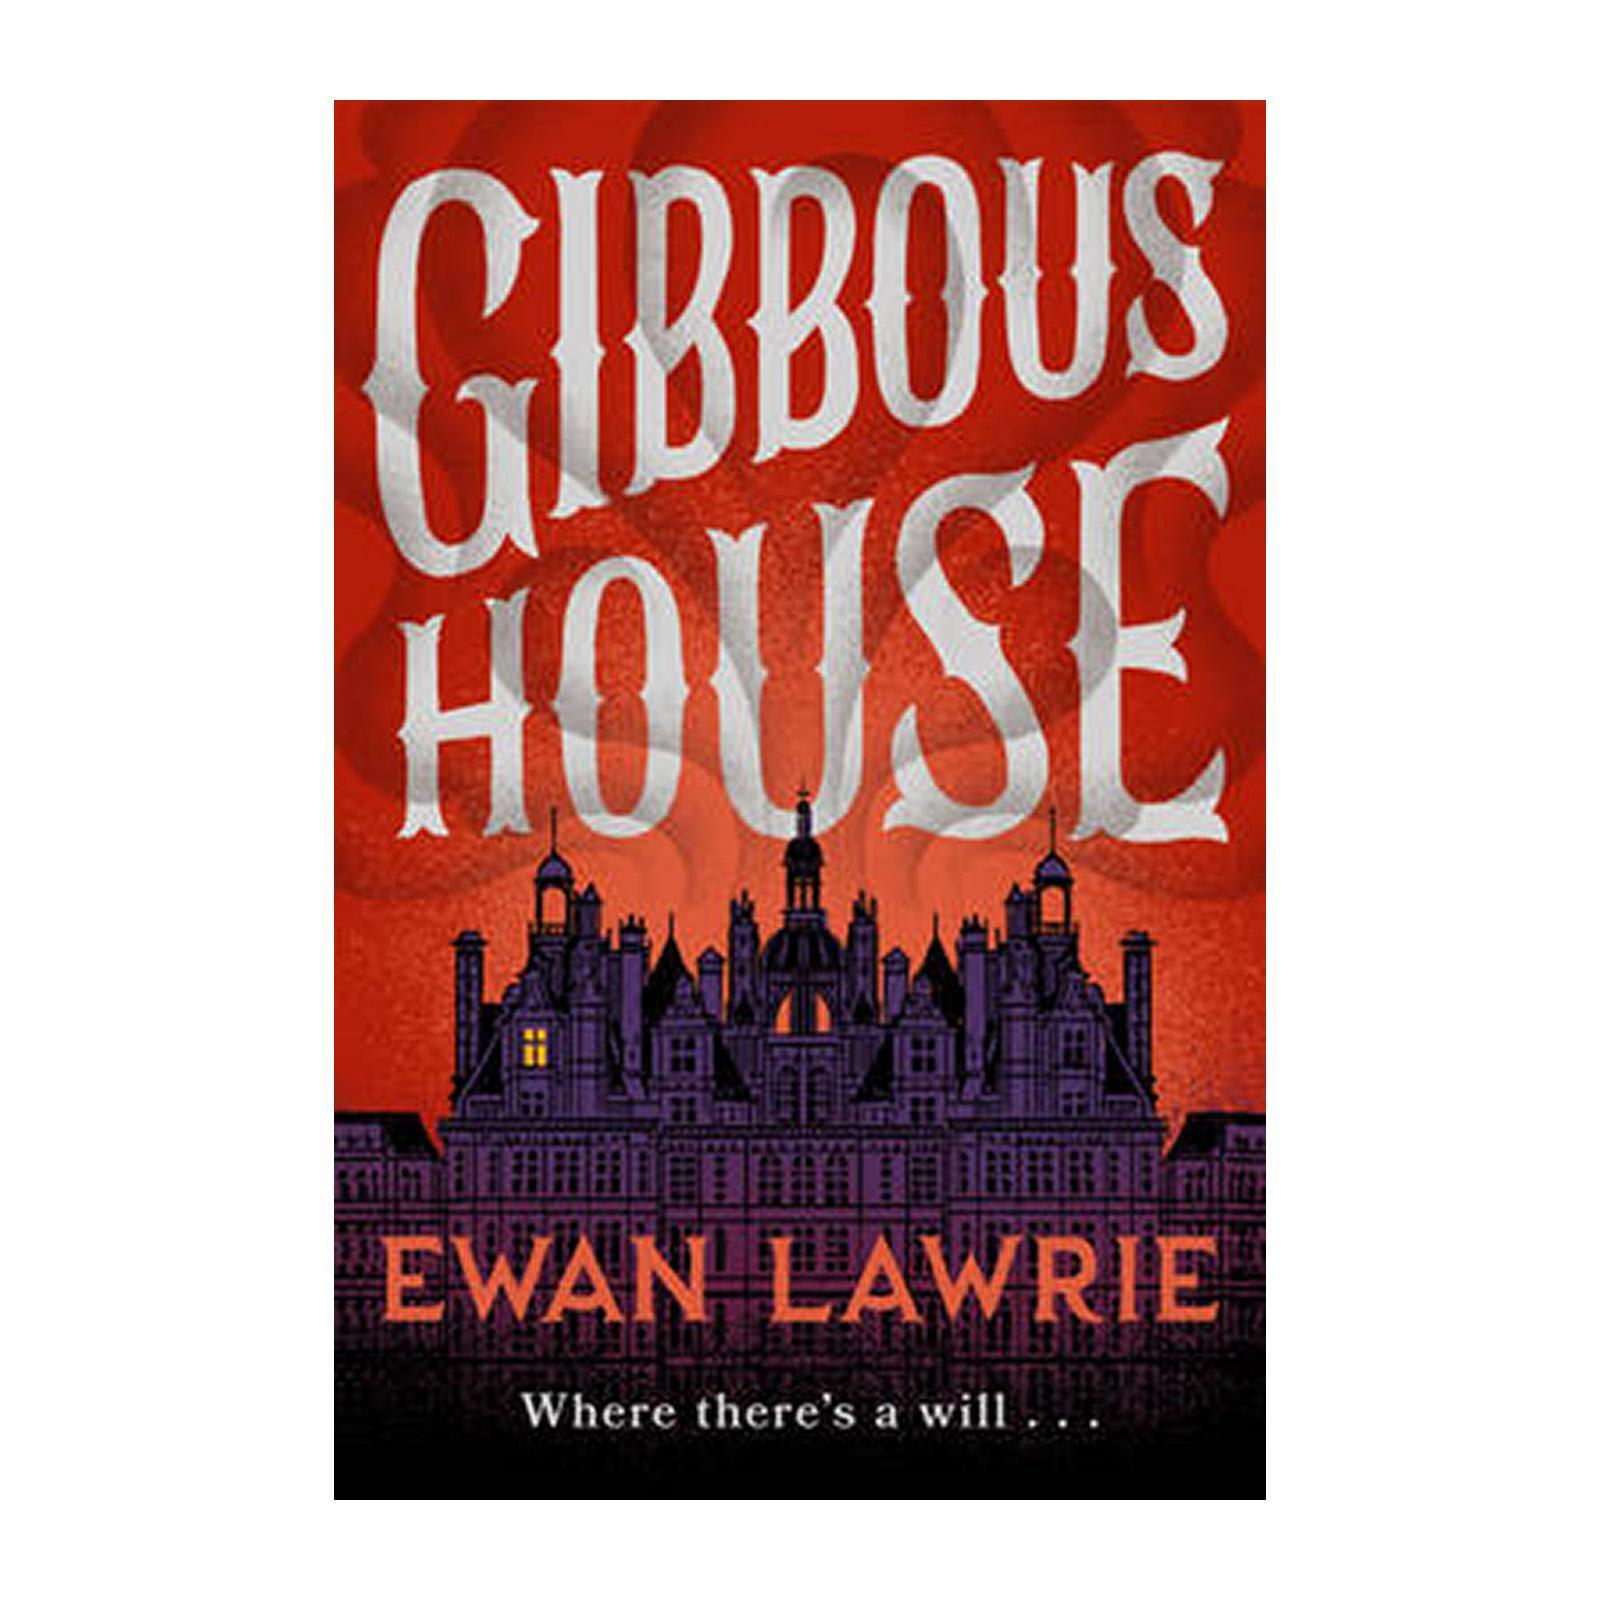 Gibbous House (Paperback)